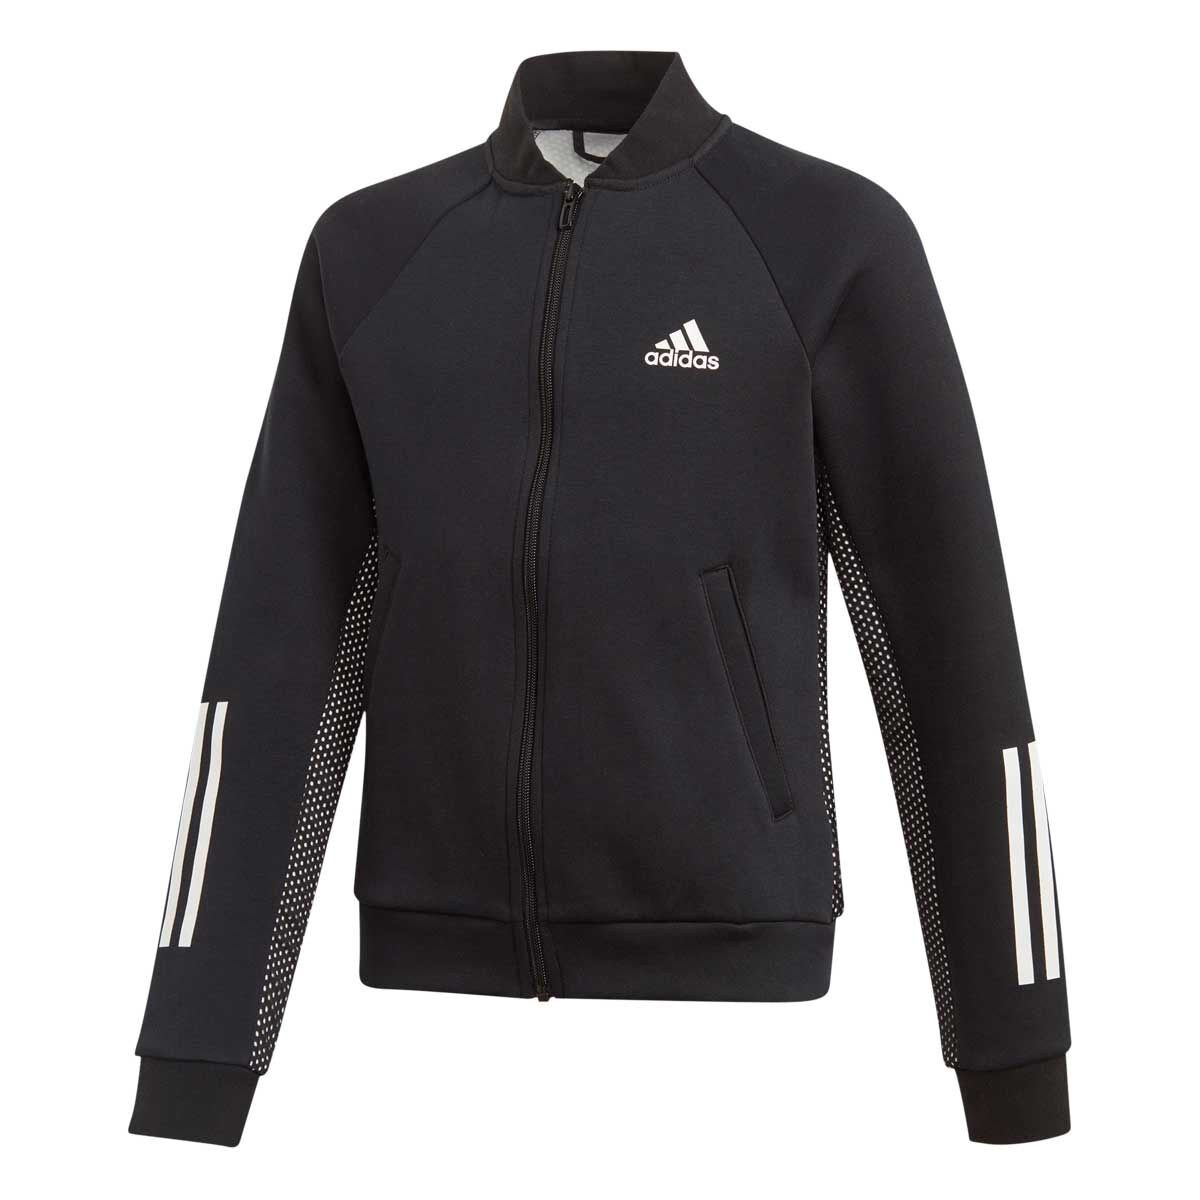 adidas Girls' Ready To Go Cover Up Jacket